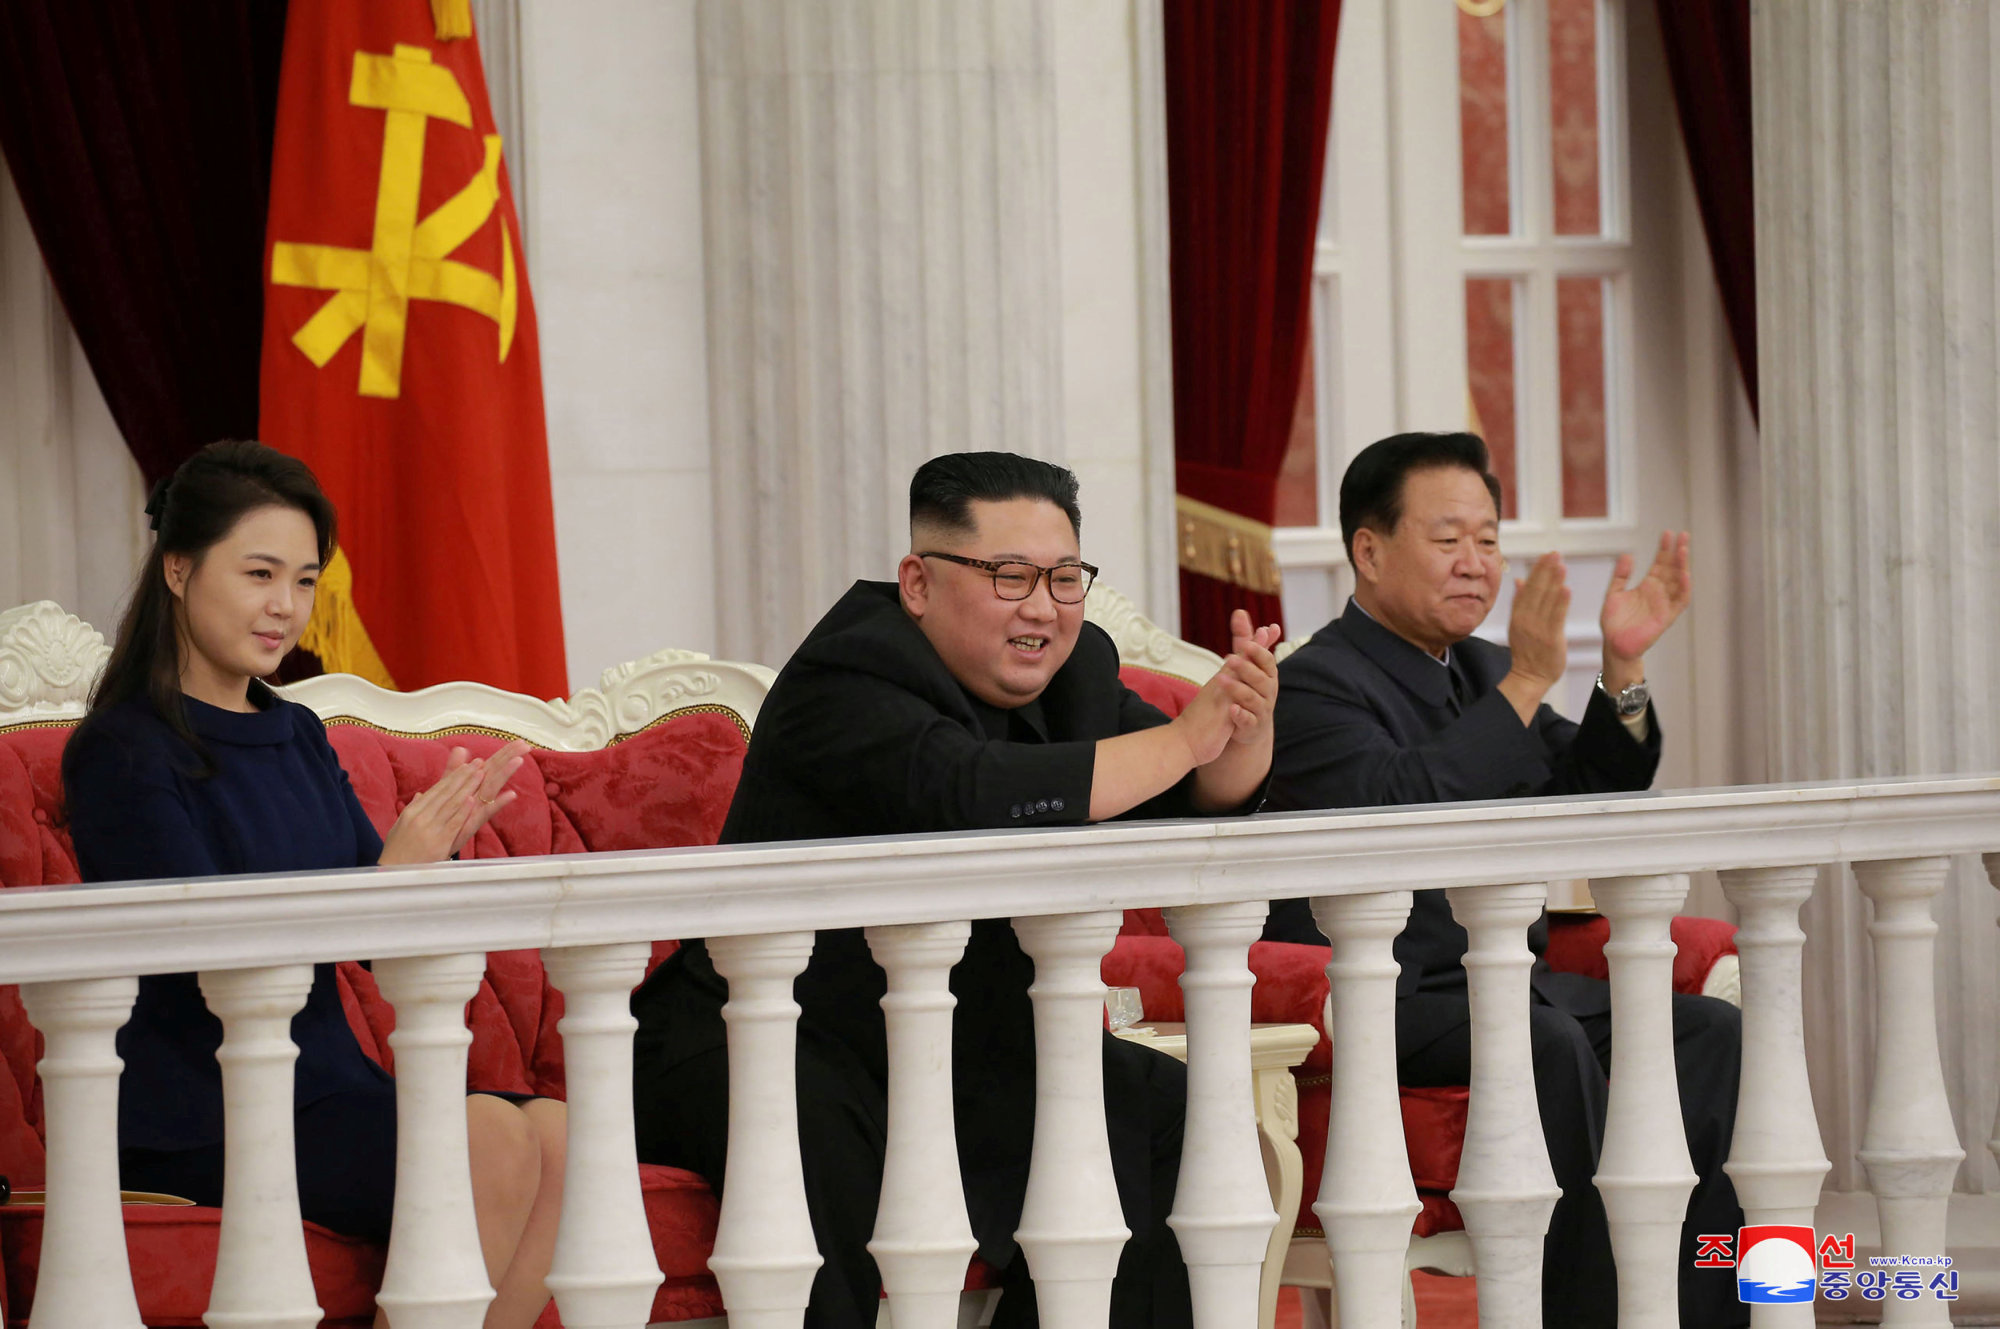 North Korean leader Kim Jong Un and wife Ri Sol Ju applaud during a performance by the State Merited Chorus at an annex to the headquarters of the Party Central Committee on the 71st founding anniversary of the Korean People's Army (KPA), in Pyongyang Feb. 8. | KCNA / VIA REUTERS